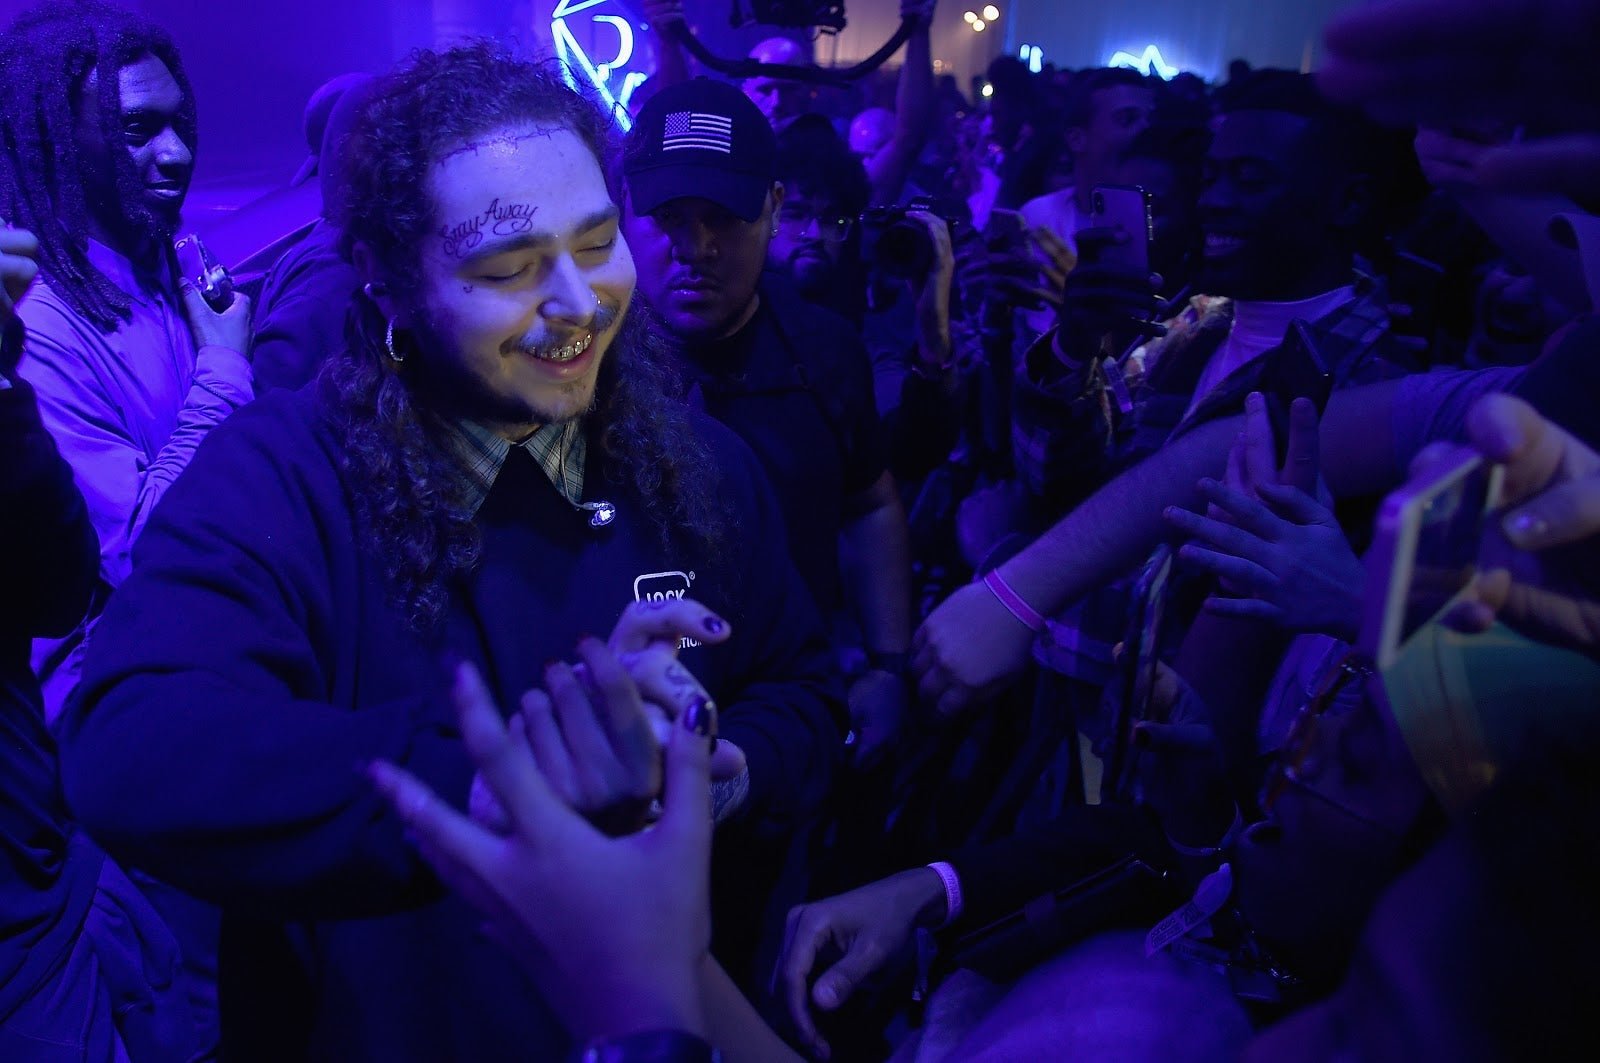 Post Malone Gets Baked, Streams Call Of Duty On Twitch